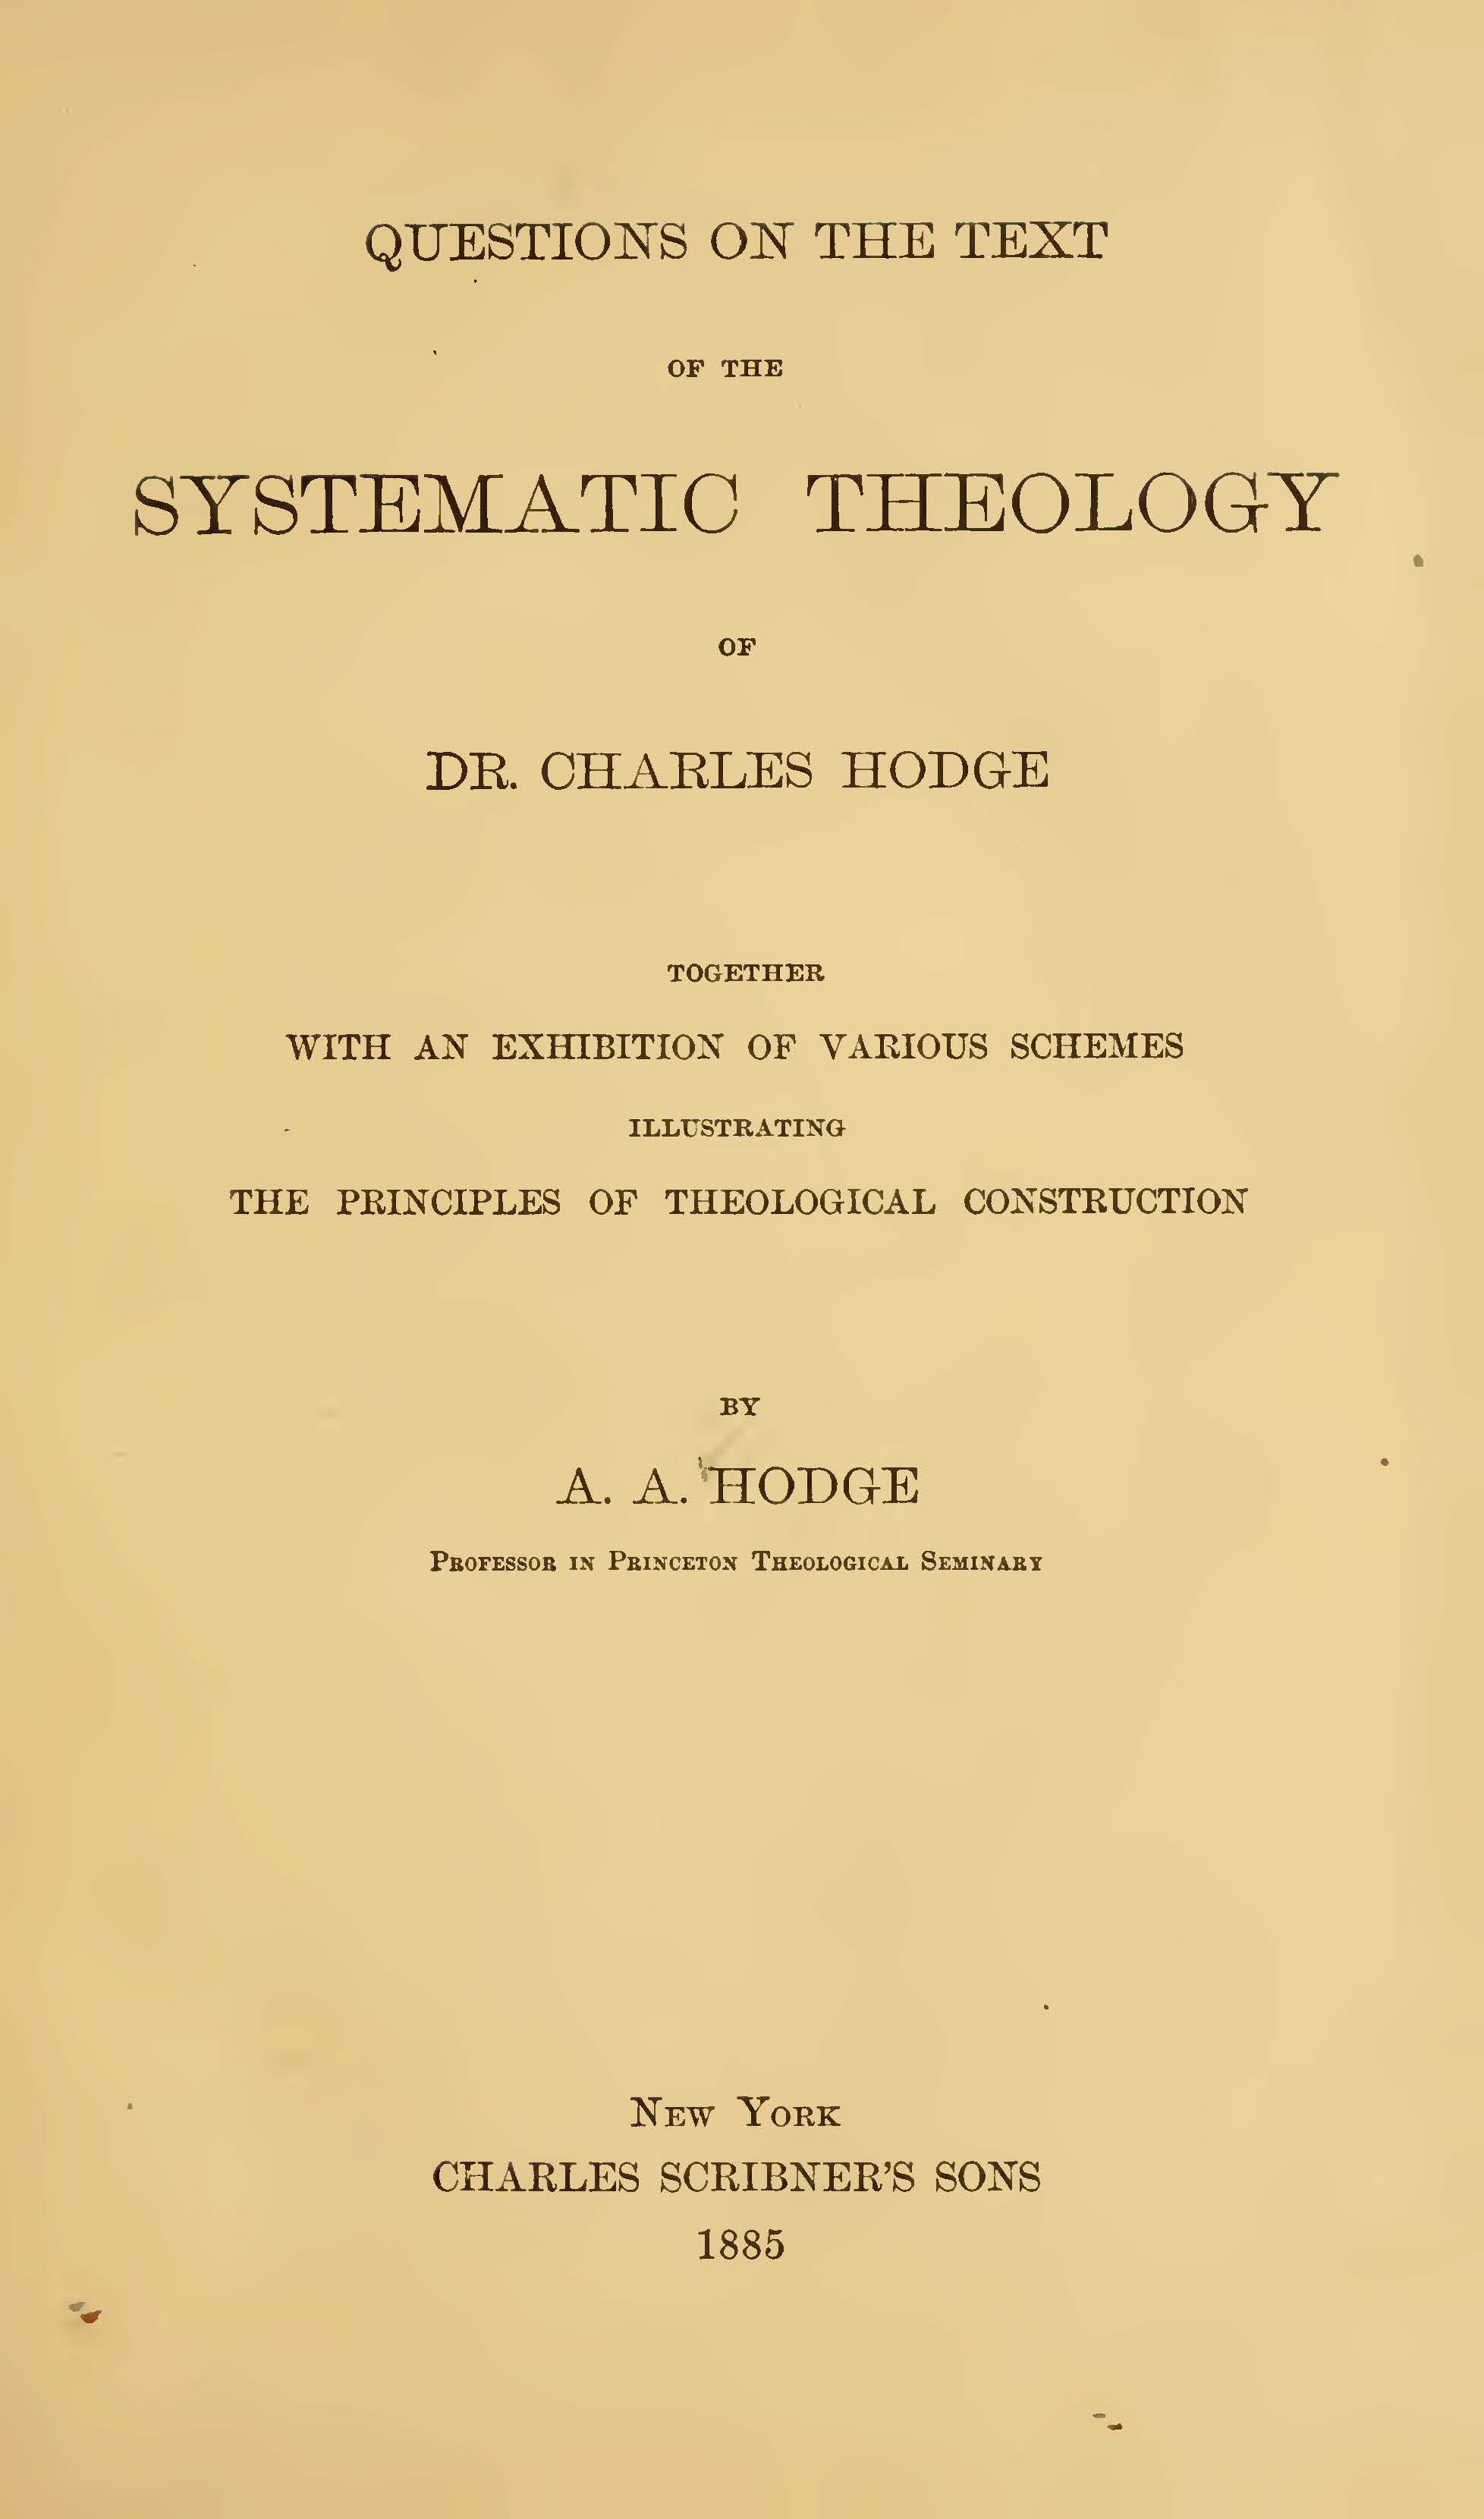 Hodge, A.A., Questions on the Text of the Systematic Theology of Dr. Charles Hodge Title Page.jpg